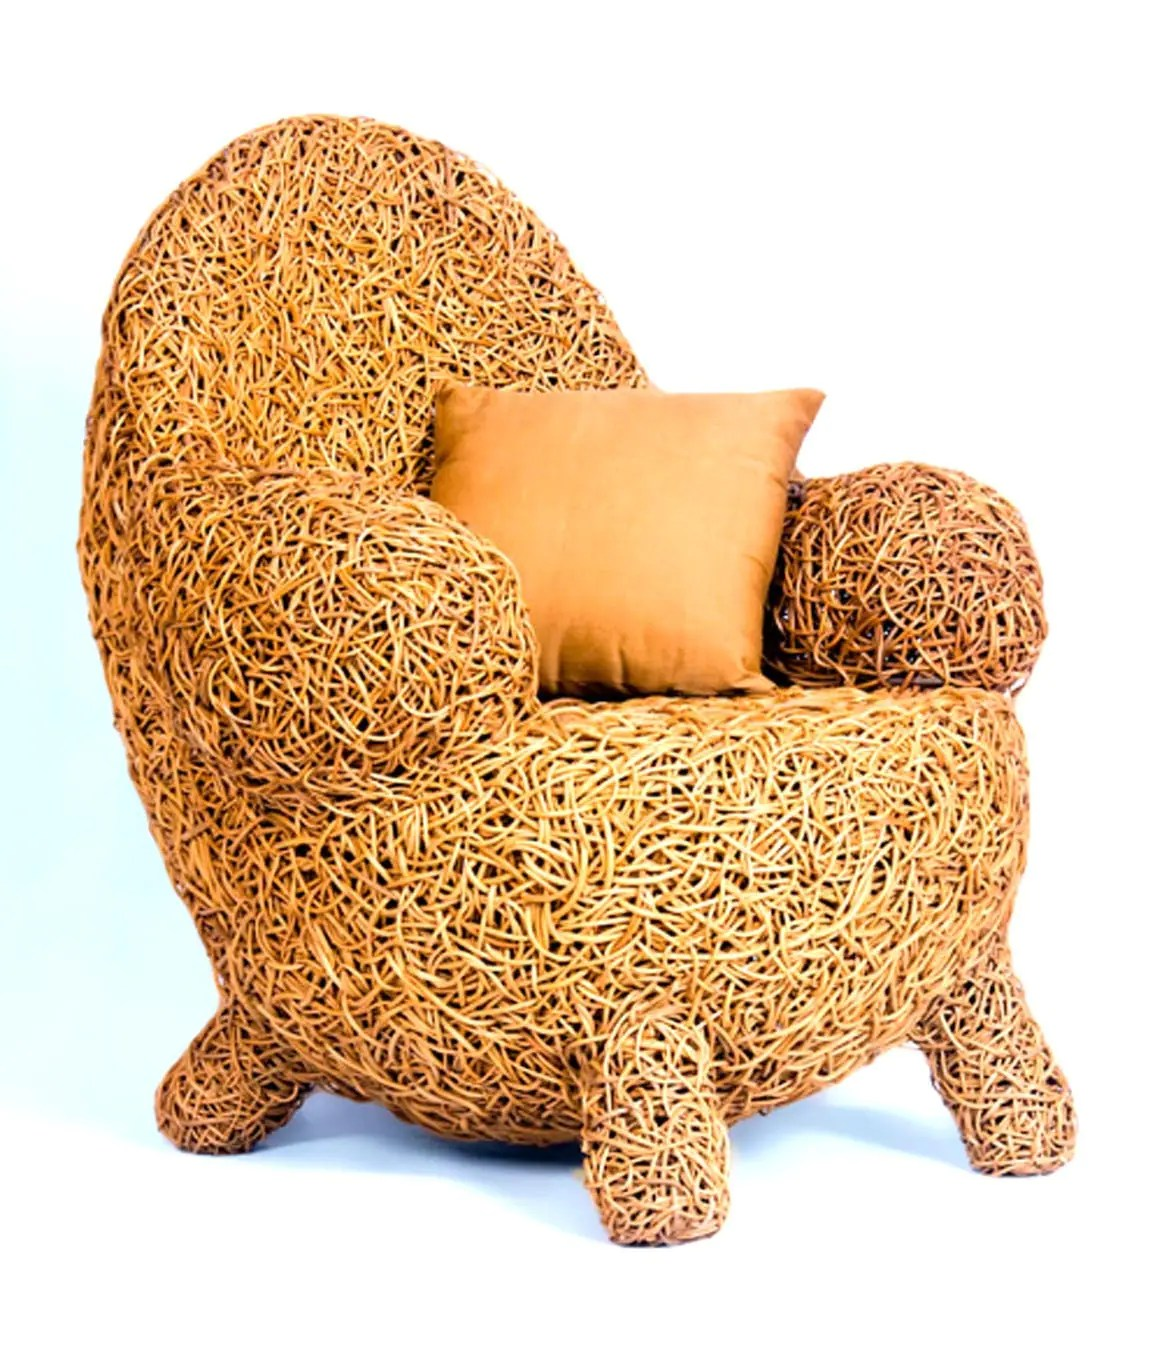 Handmade armchair made from natural sustainable materials - Parameria